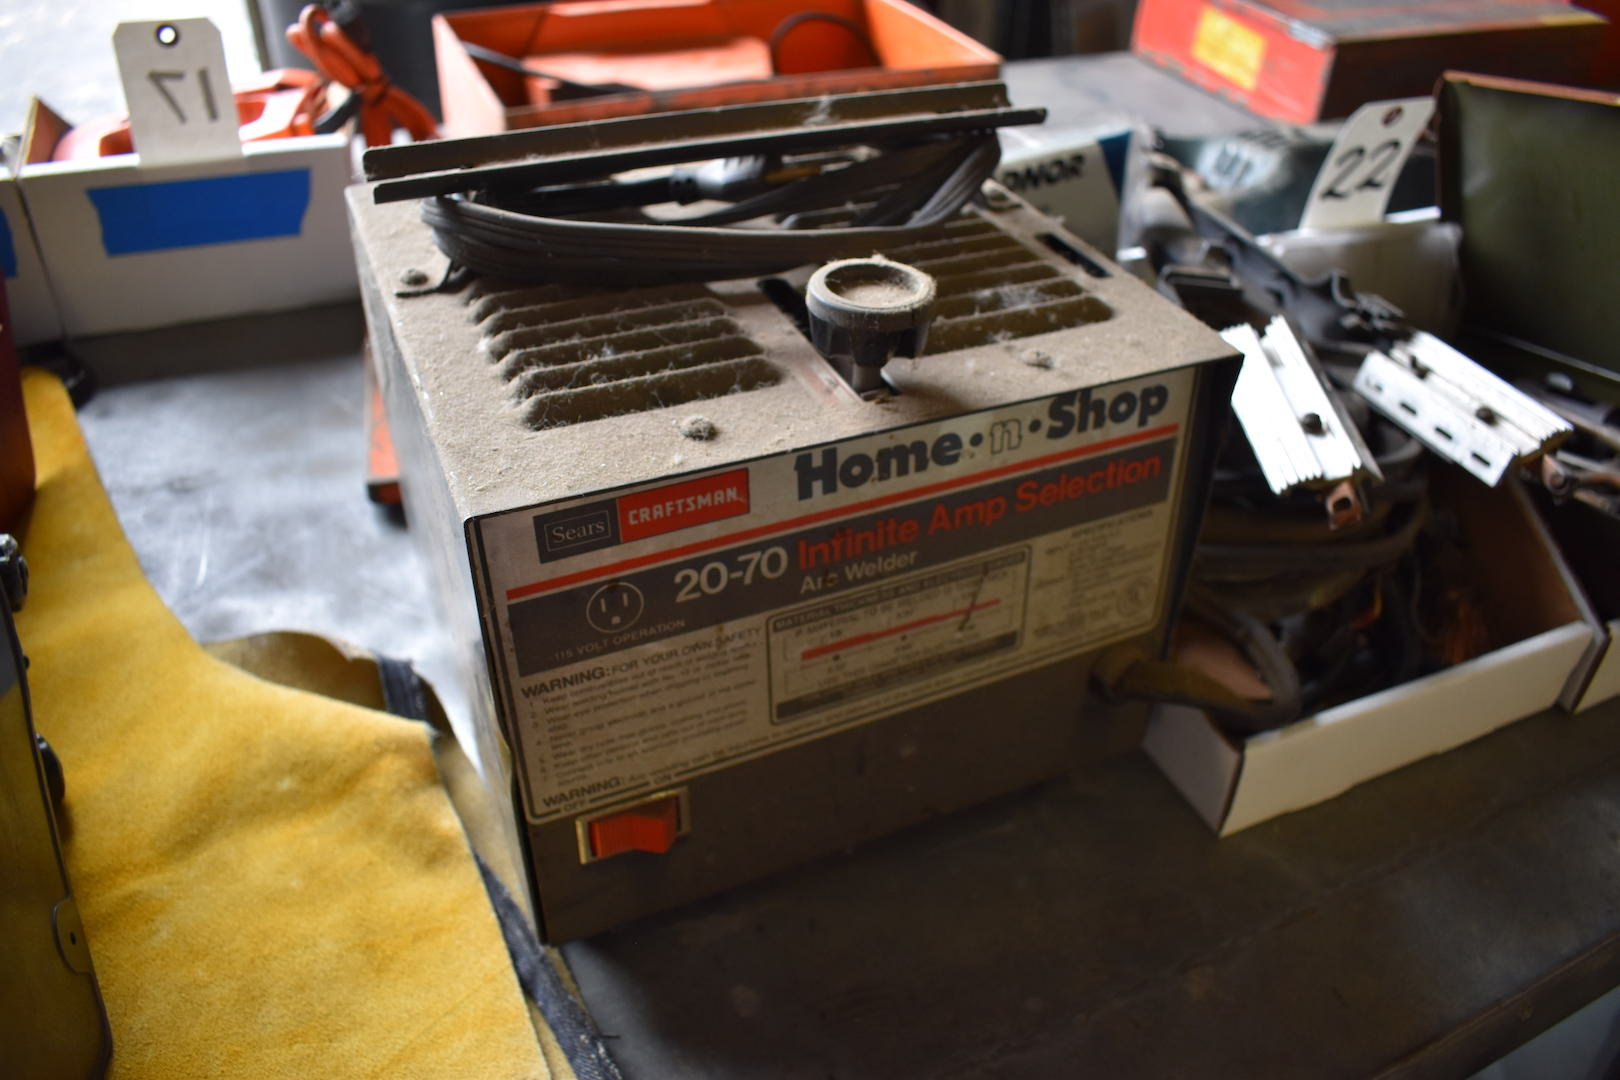 Lot 22 - Sears/Craftsman Home-n-Shop 20-70 Infinite Amp Selection Arc Welder, with Accessories